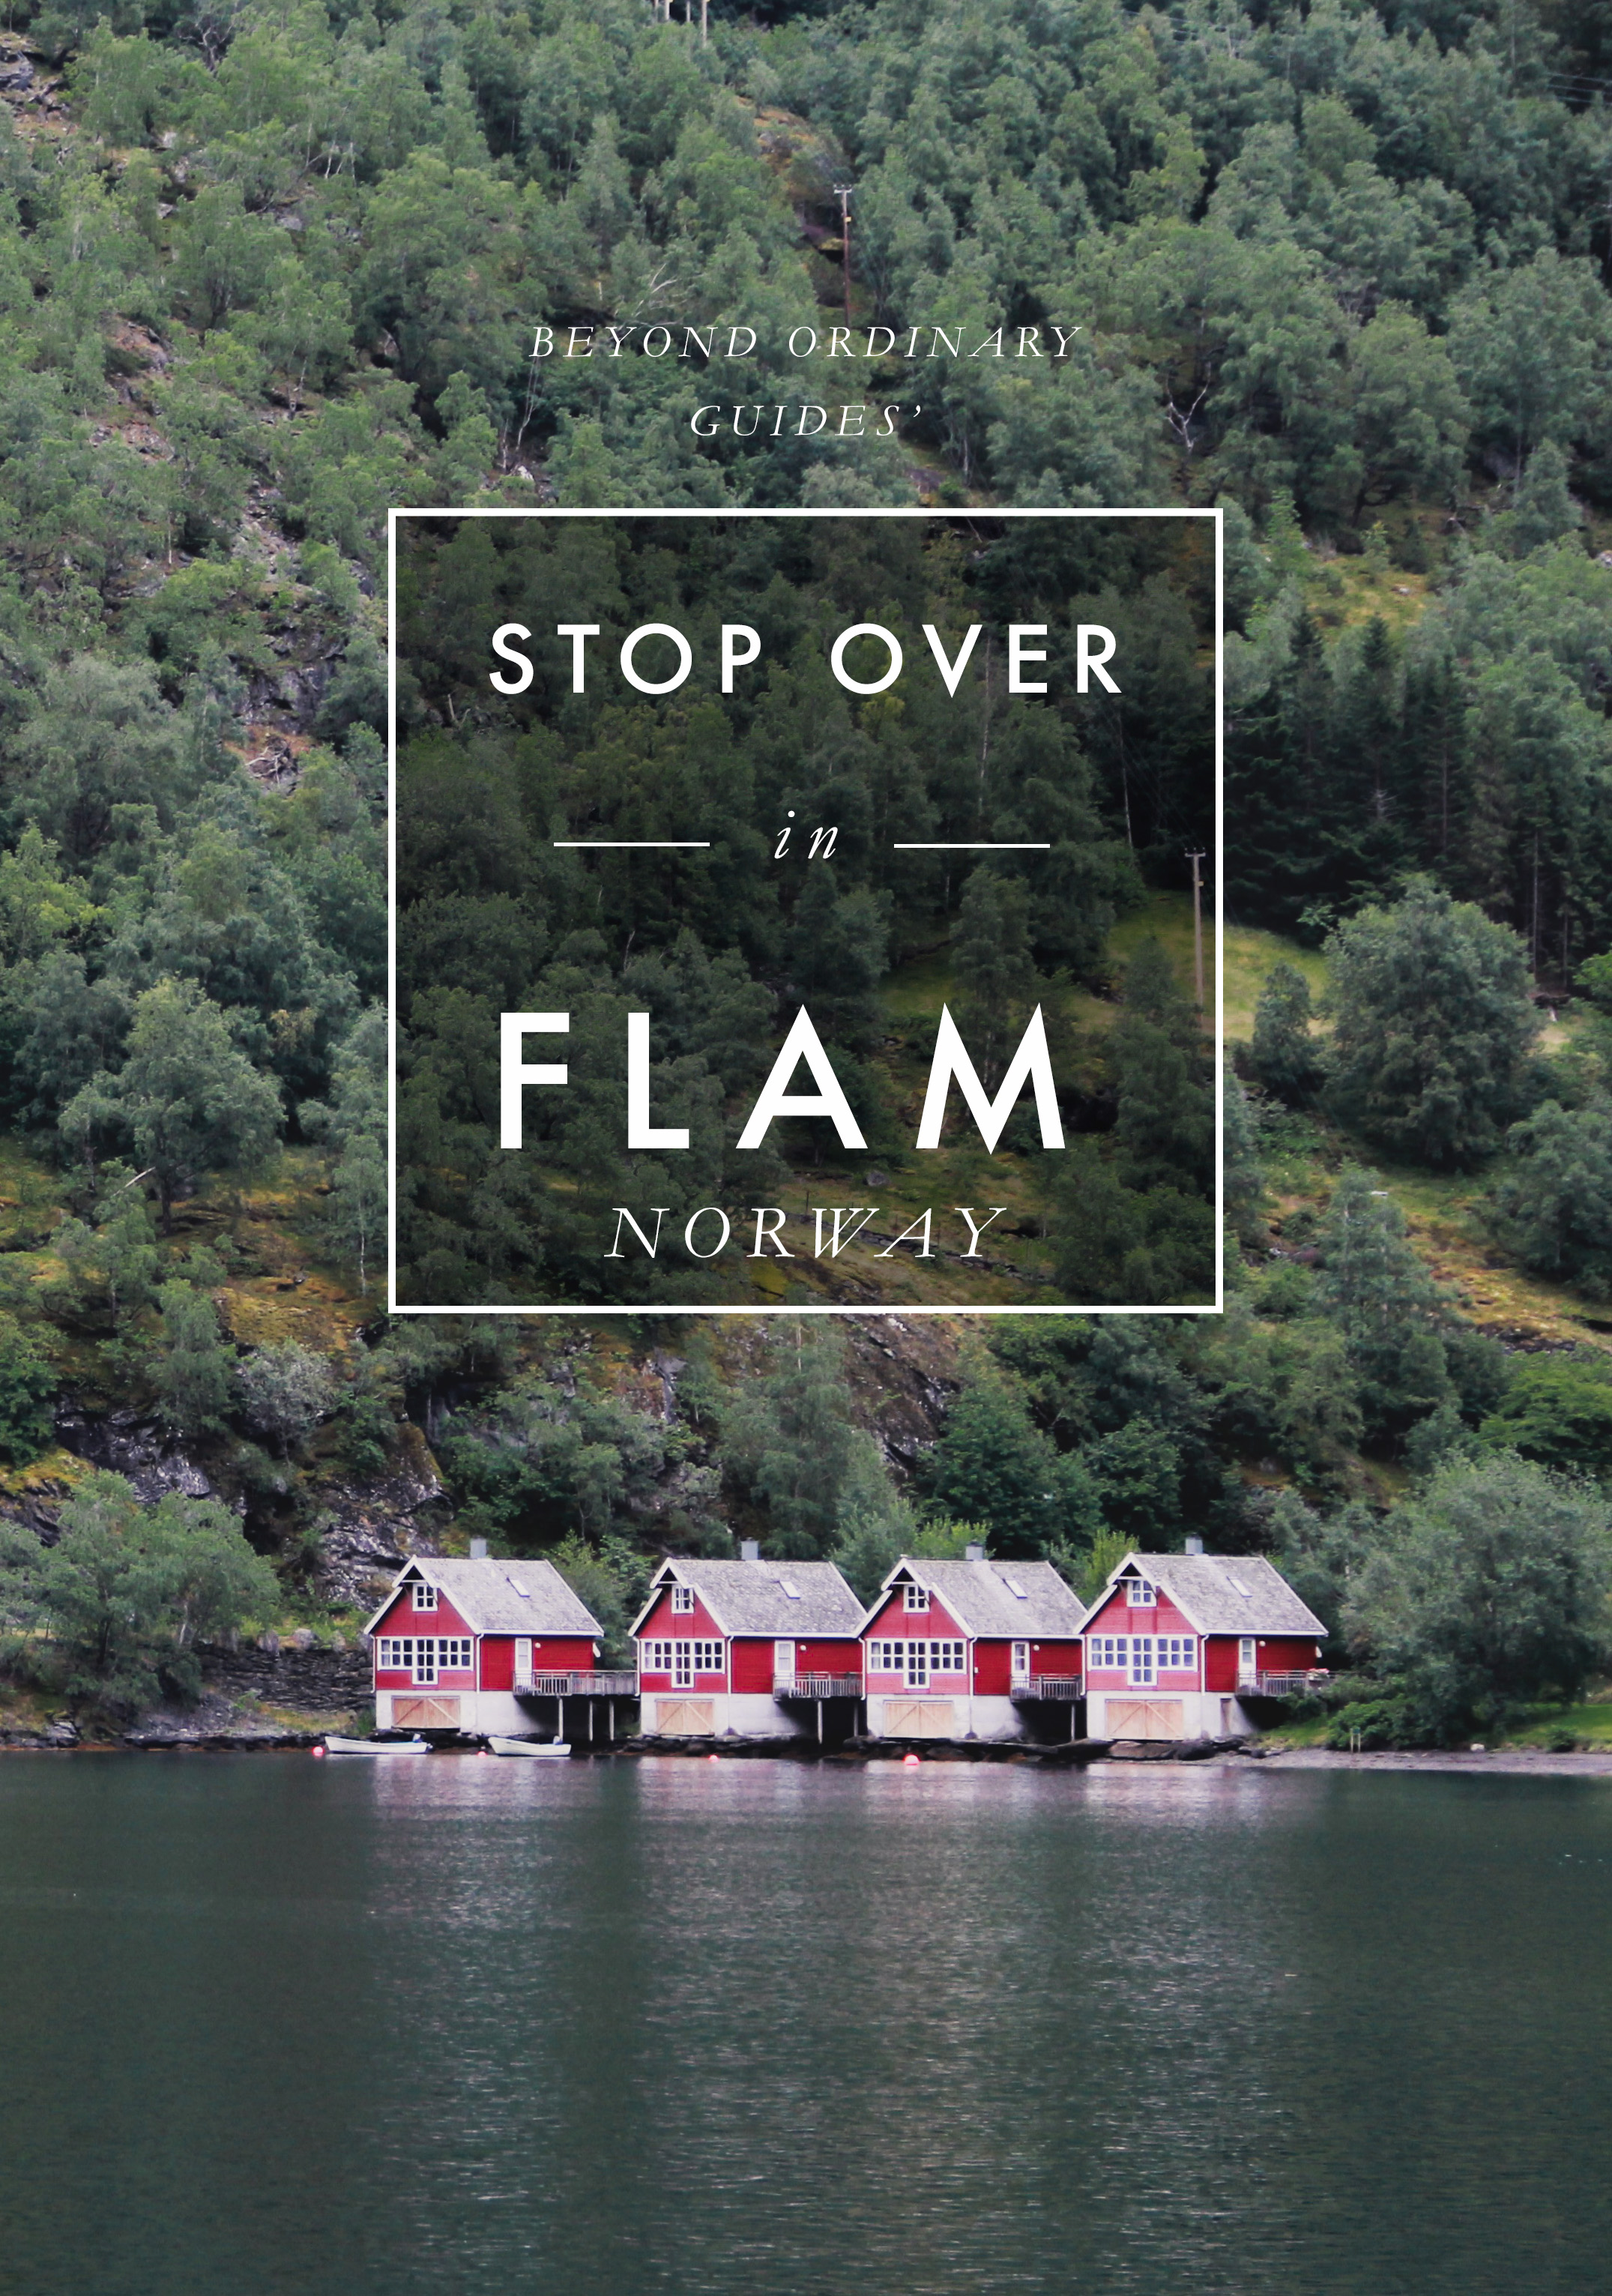 Beyond Ordinary Guides' Stop Over in Flam, Norway